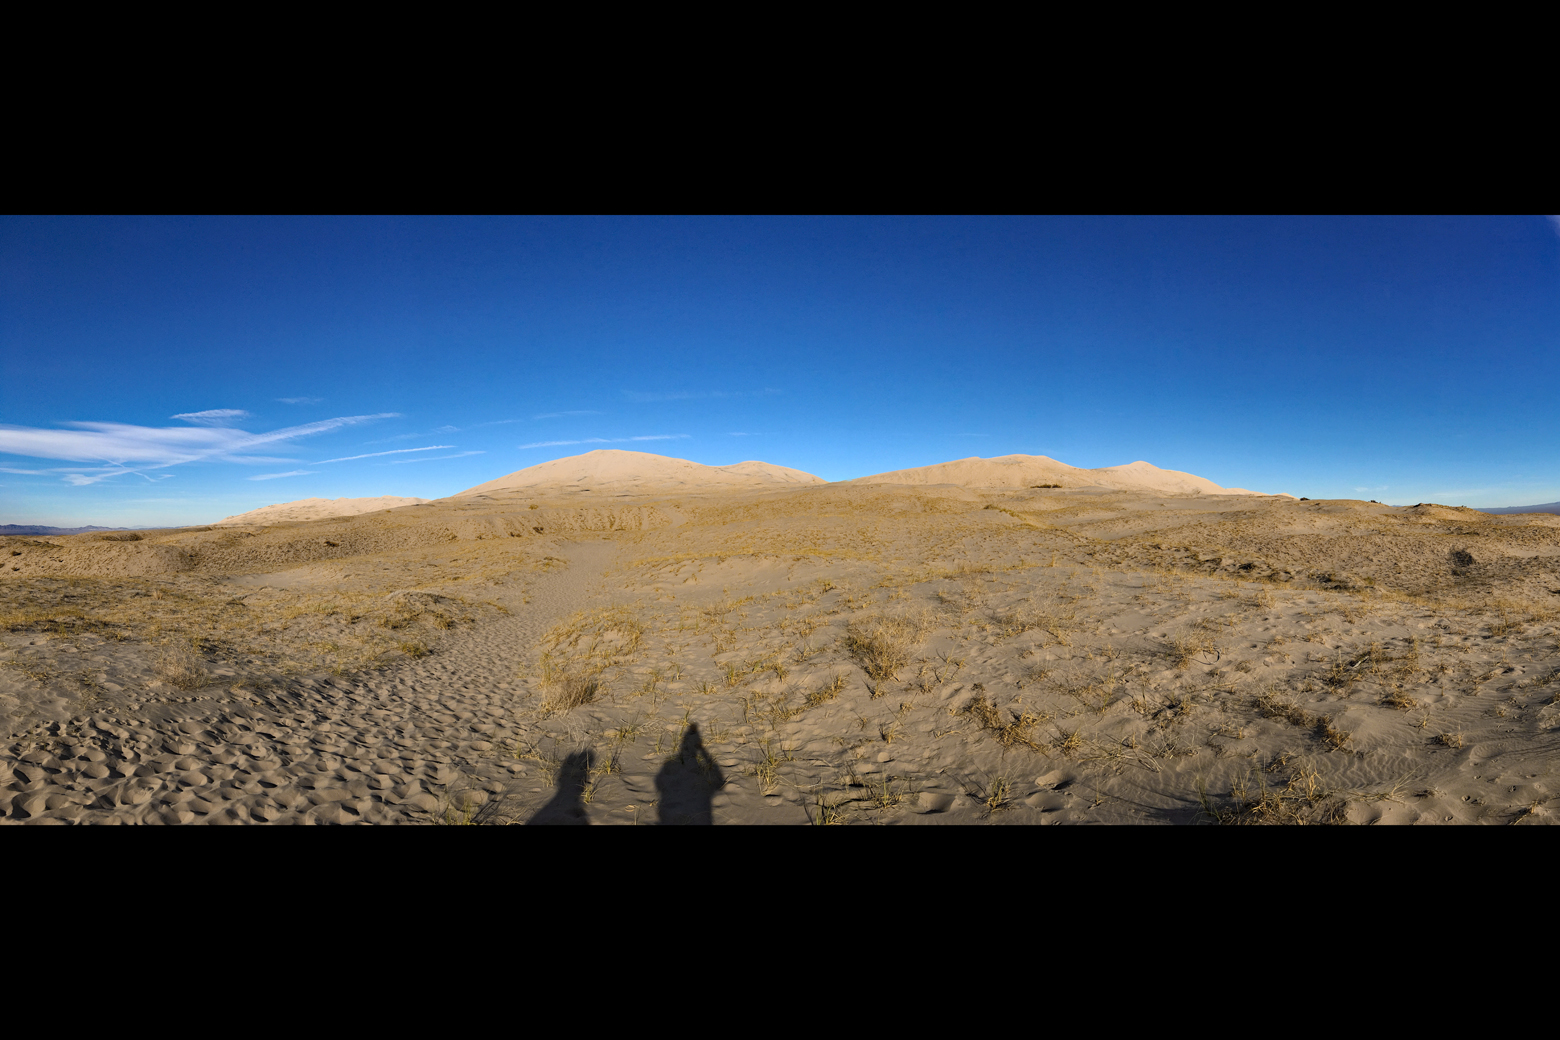 At the beginning of the trail to the top of the dunes with the dunes in the distance and our shadows in the foreground